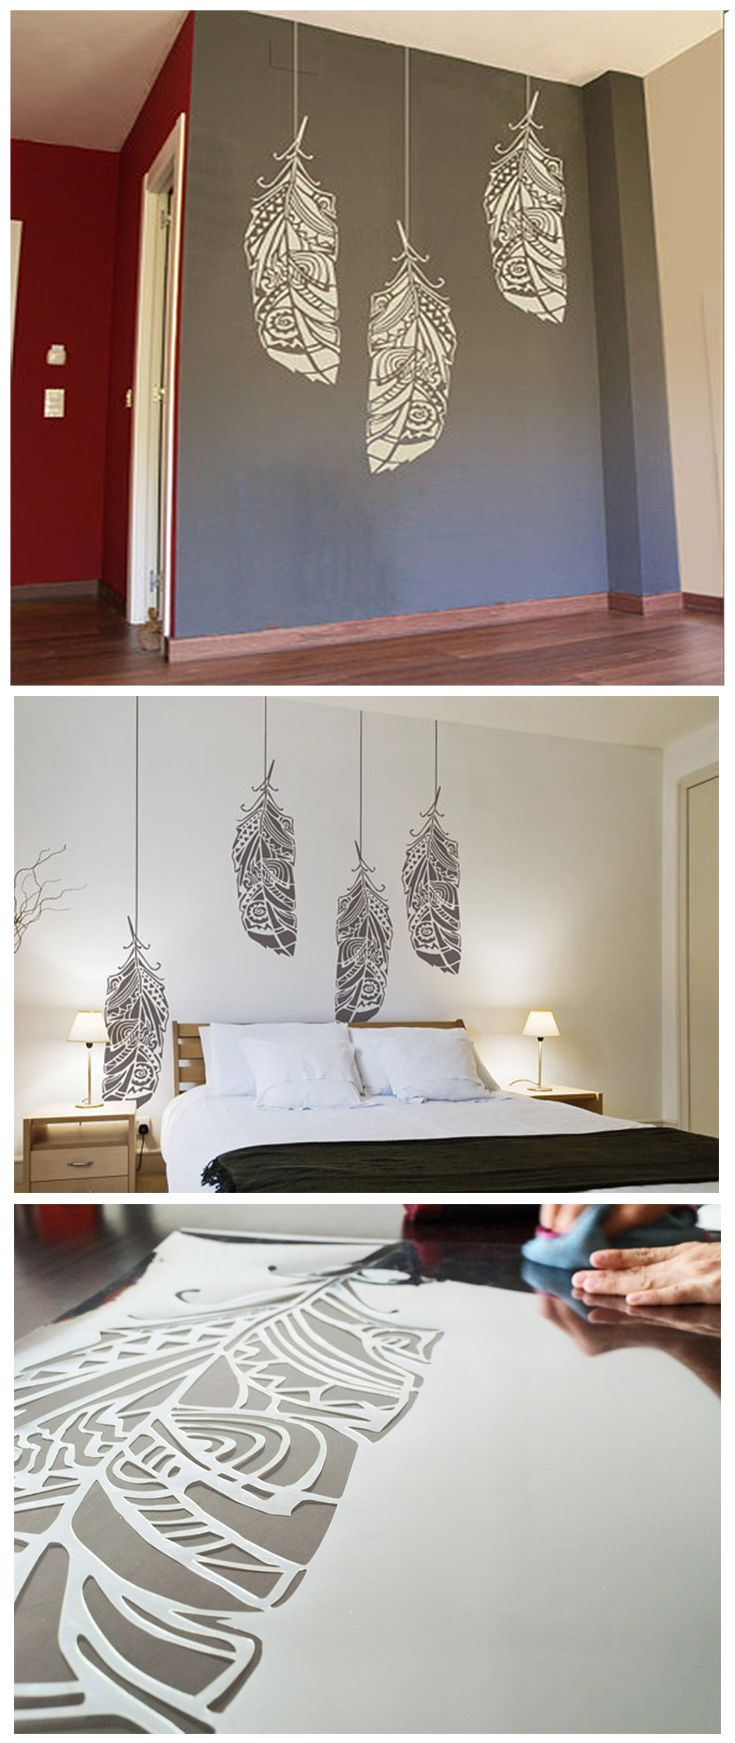 Creative bedroom wall decor ideas - Feather Stencil Ethnic Decor Element For Wall Furniture Or Textile Painting Ideas For